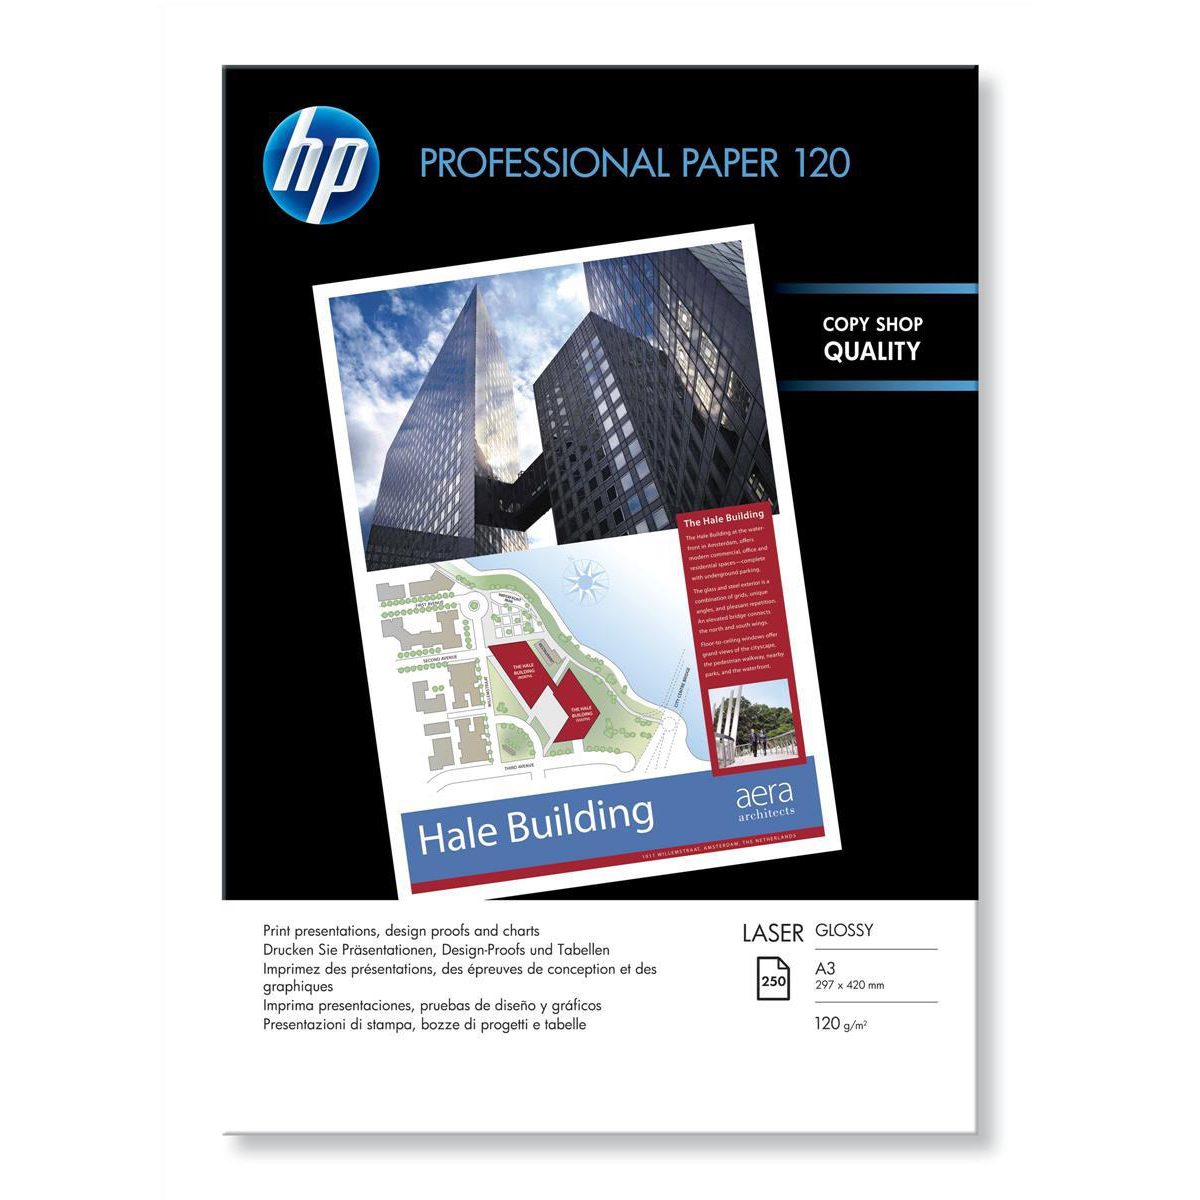 Hewlett Packard [HP] Professional Laser Paper Glossy 120gsm A3 Ref CG969A [250 Sheets]